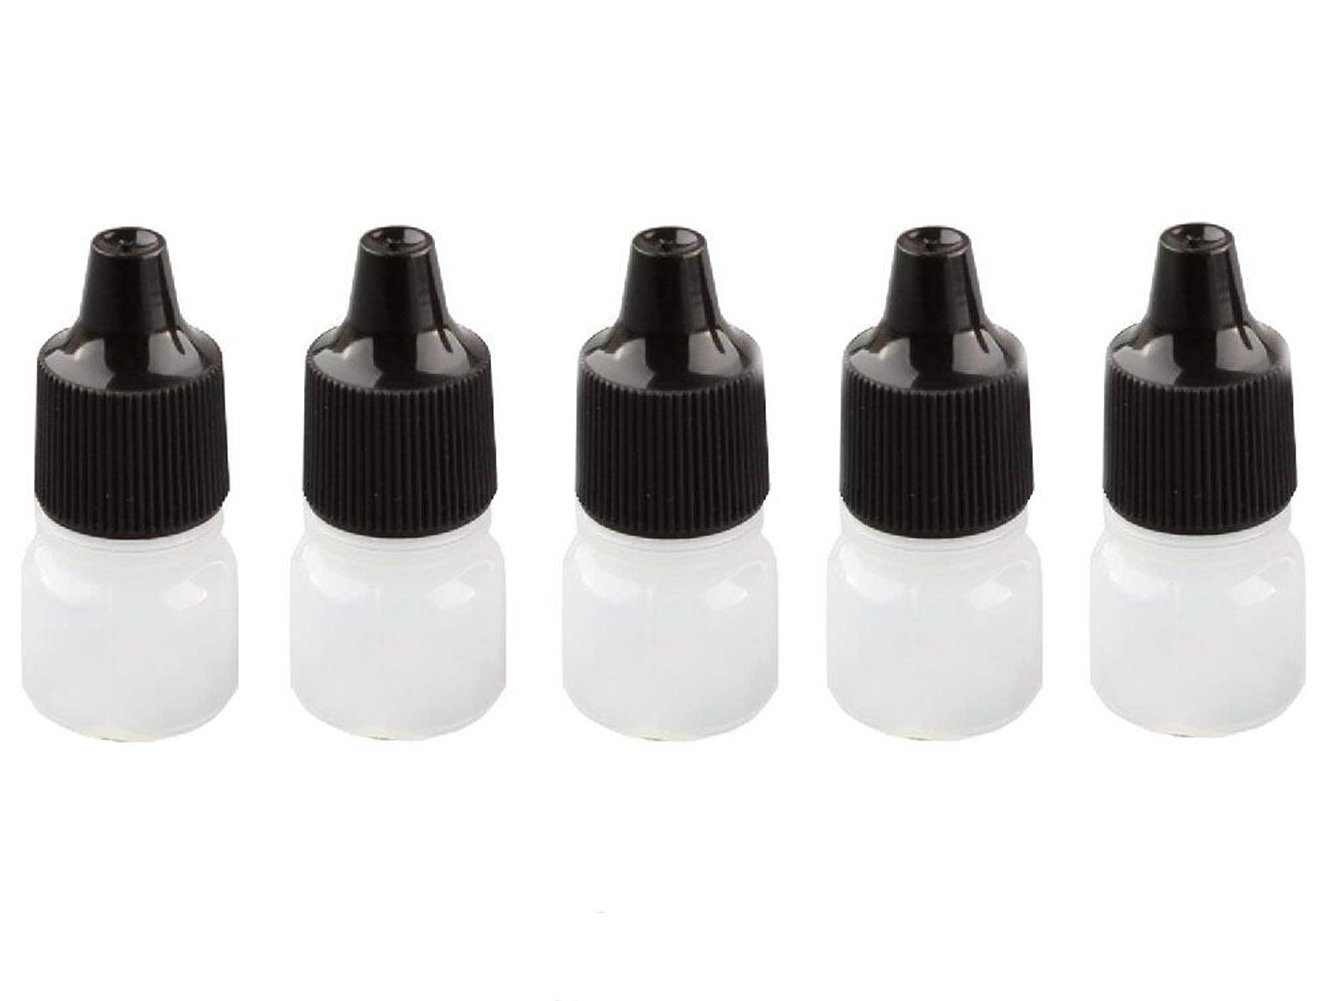 ericotry 5ml Empty Plastic It is very popular Dropper Dropping Bottle Excellent Bottles with